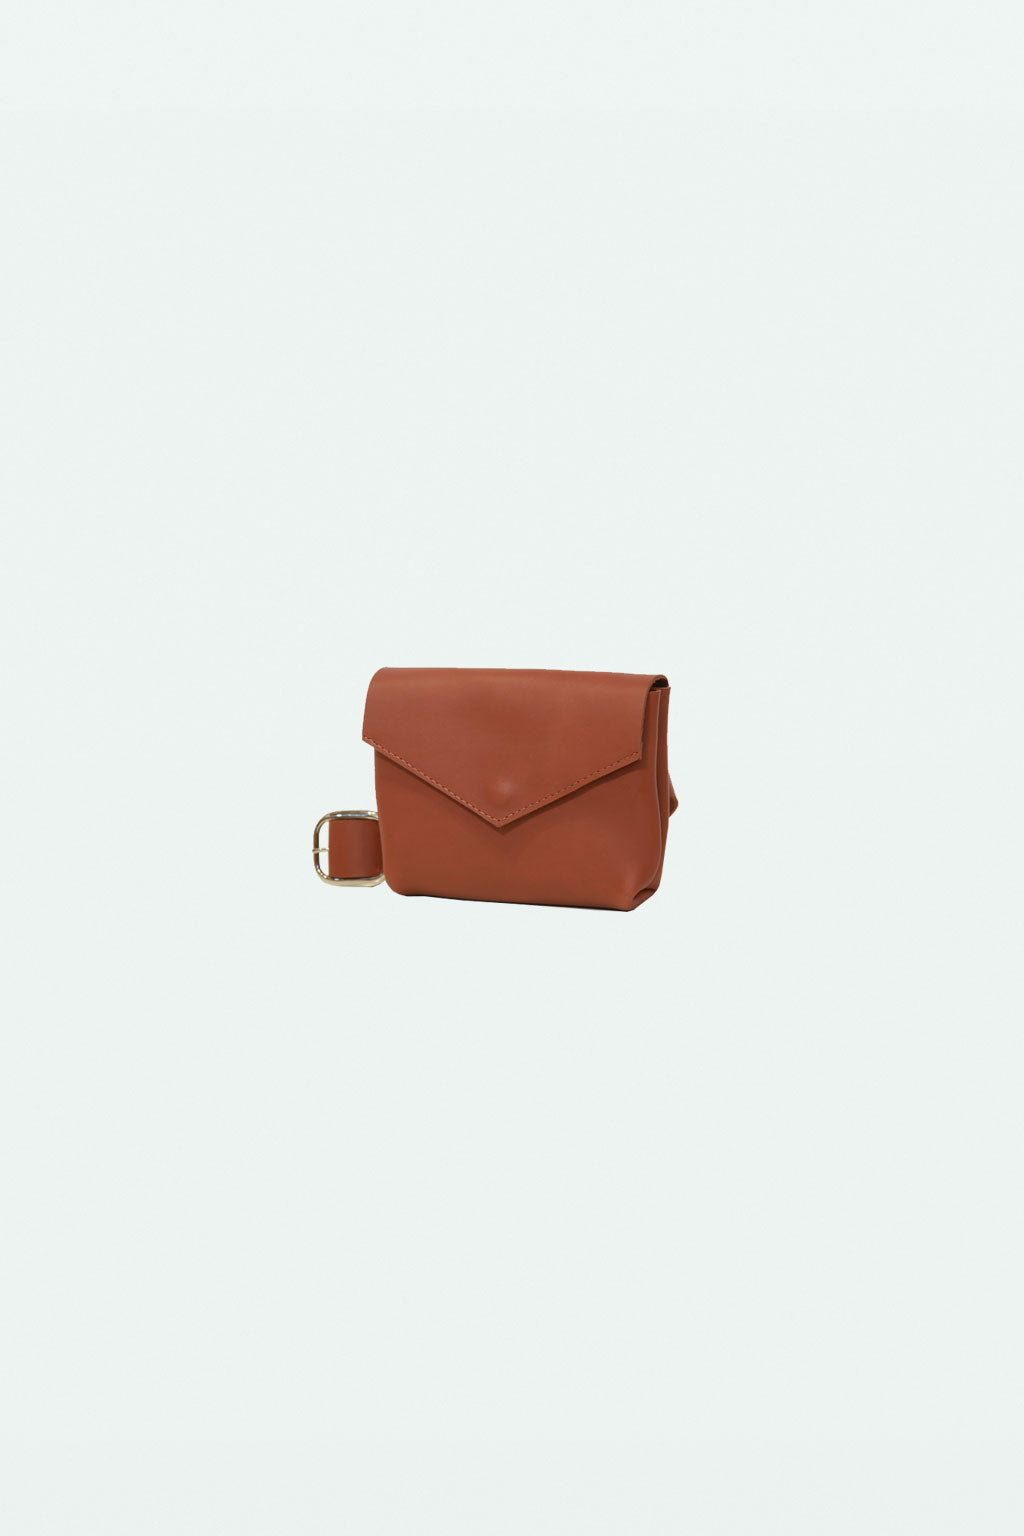 The Ellie Fanny Pack - Chestnut